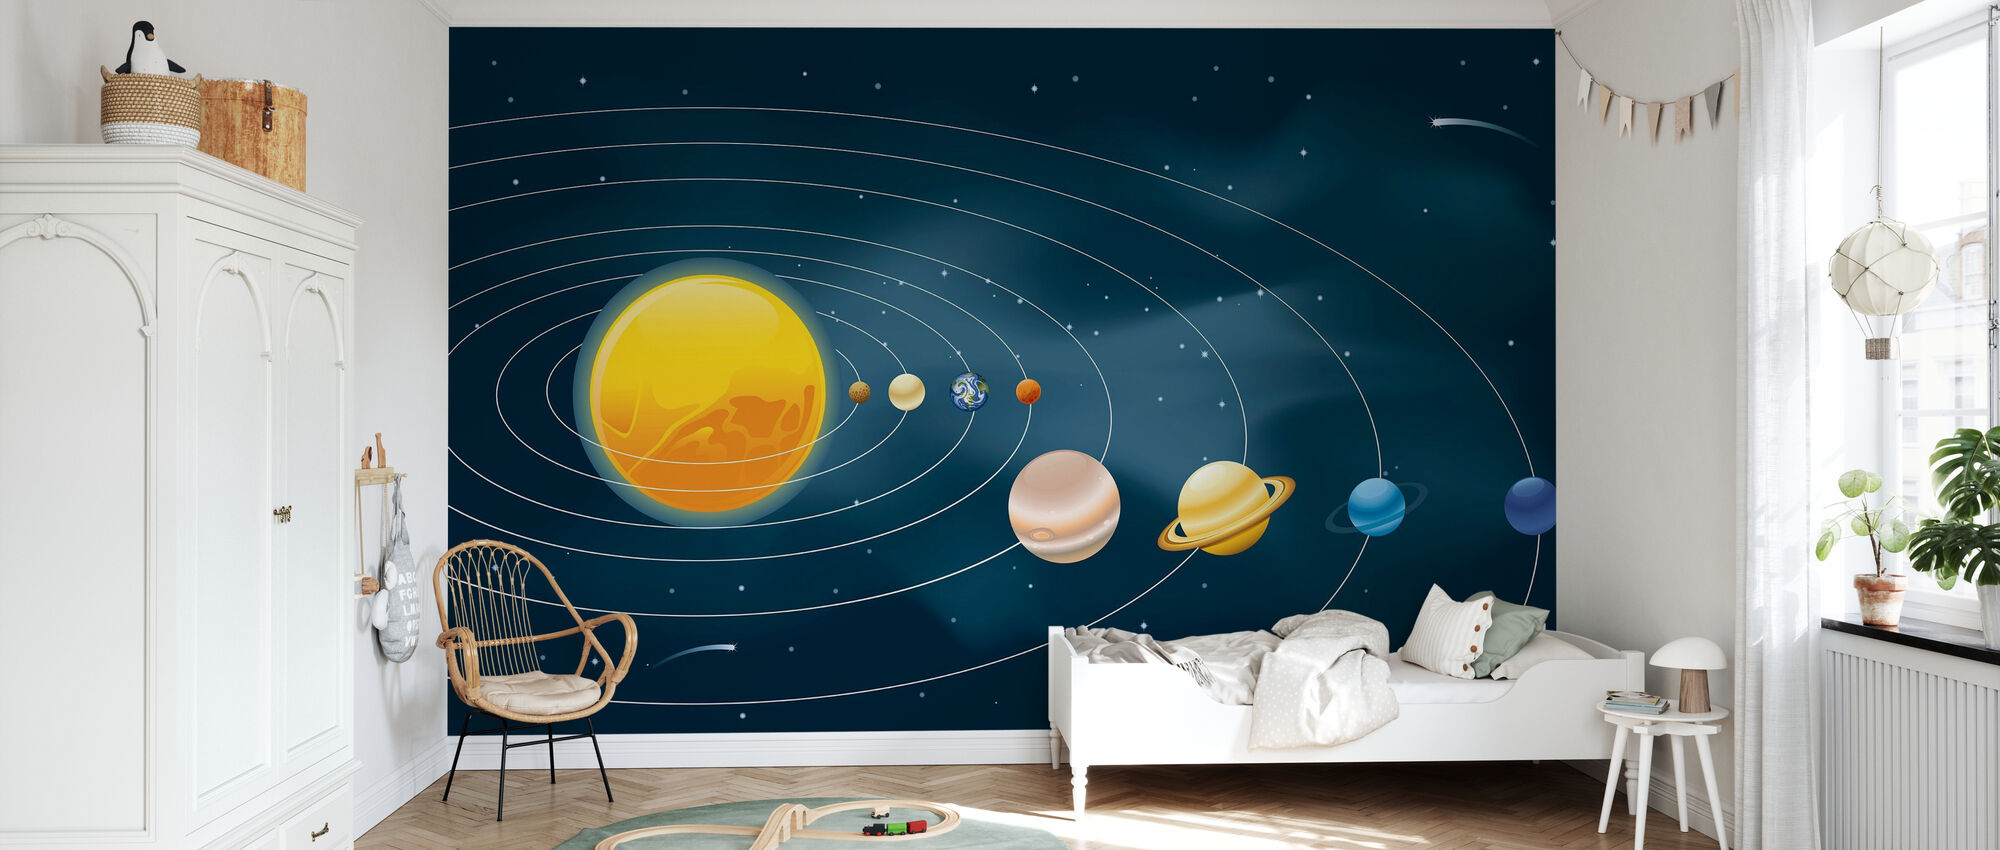 Earths Solar System - Wallpaper - Kids Room